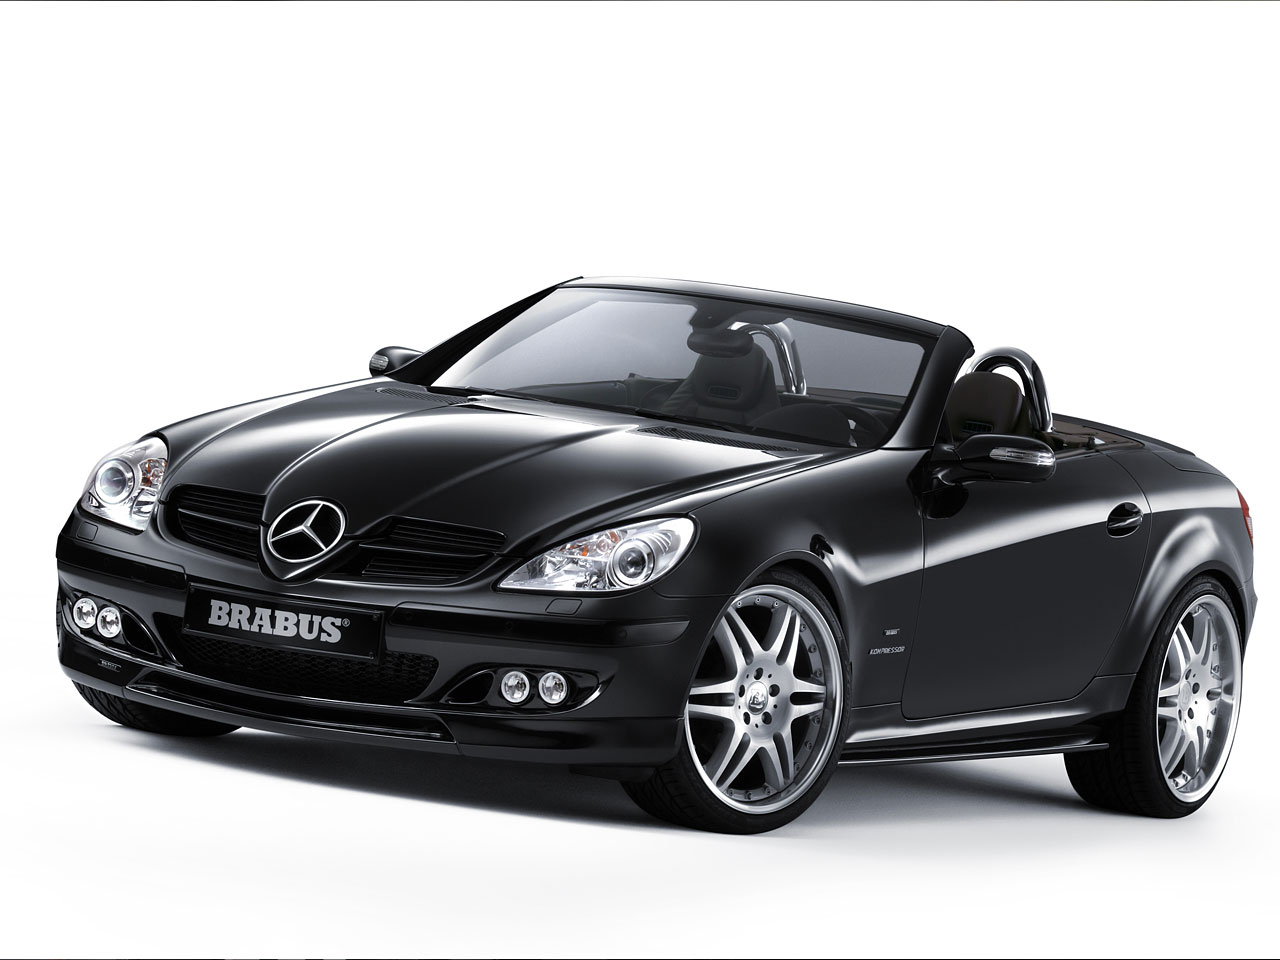 2019 Brabus Mercedes Benz SL Class photo - 4